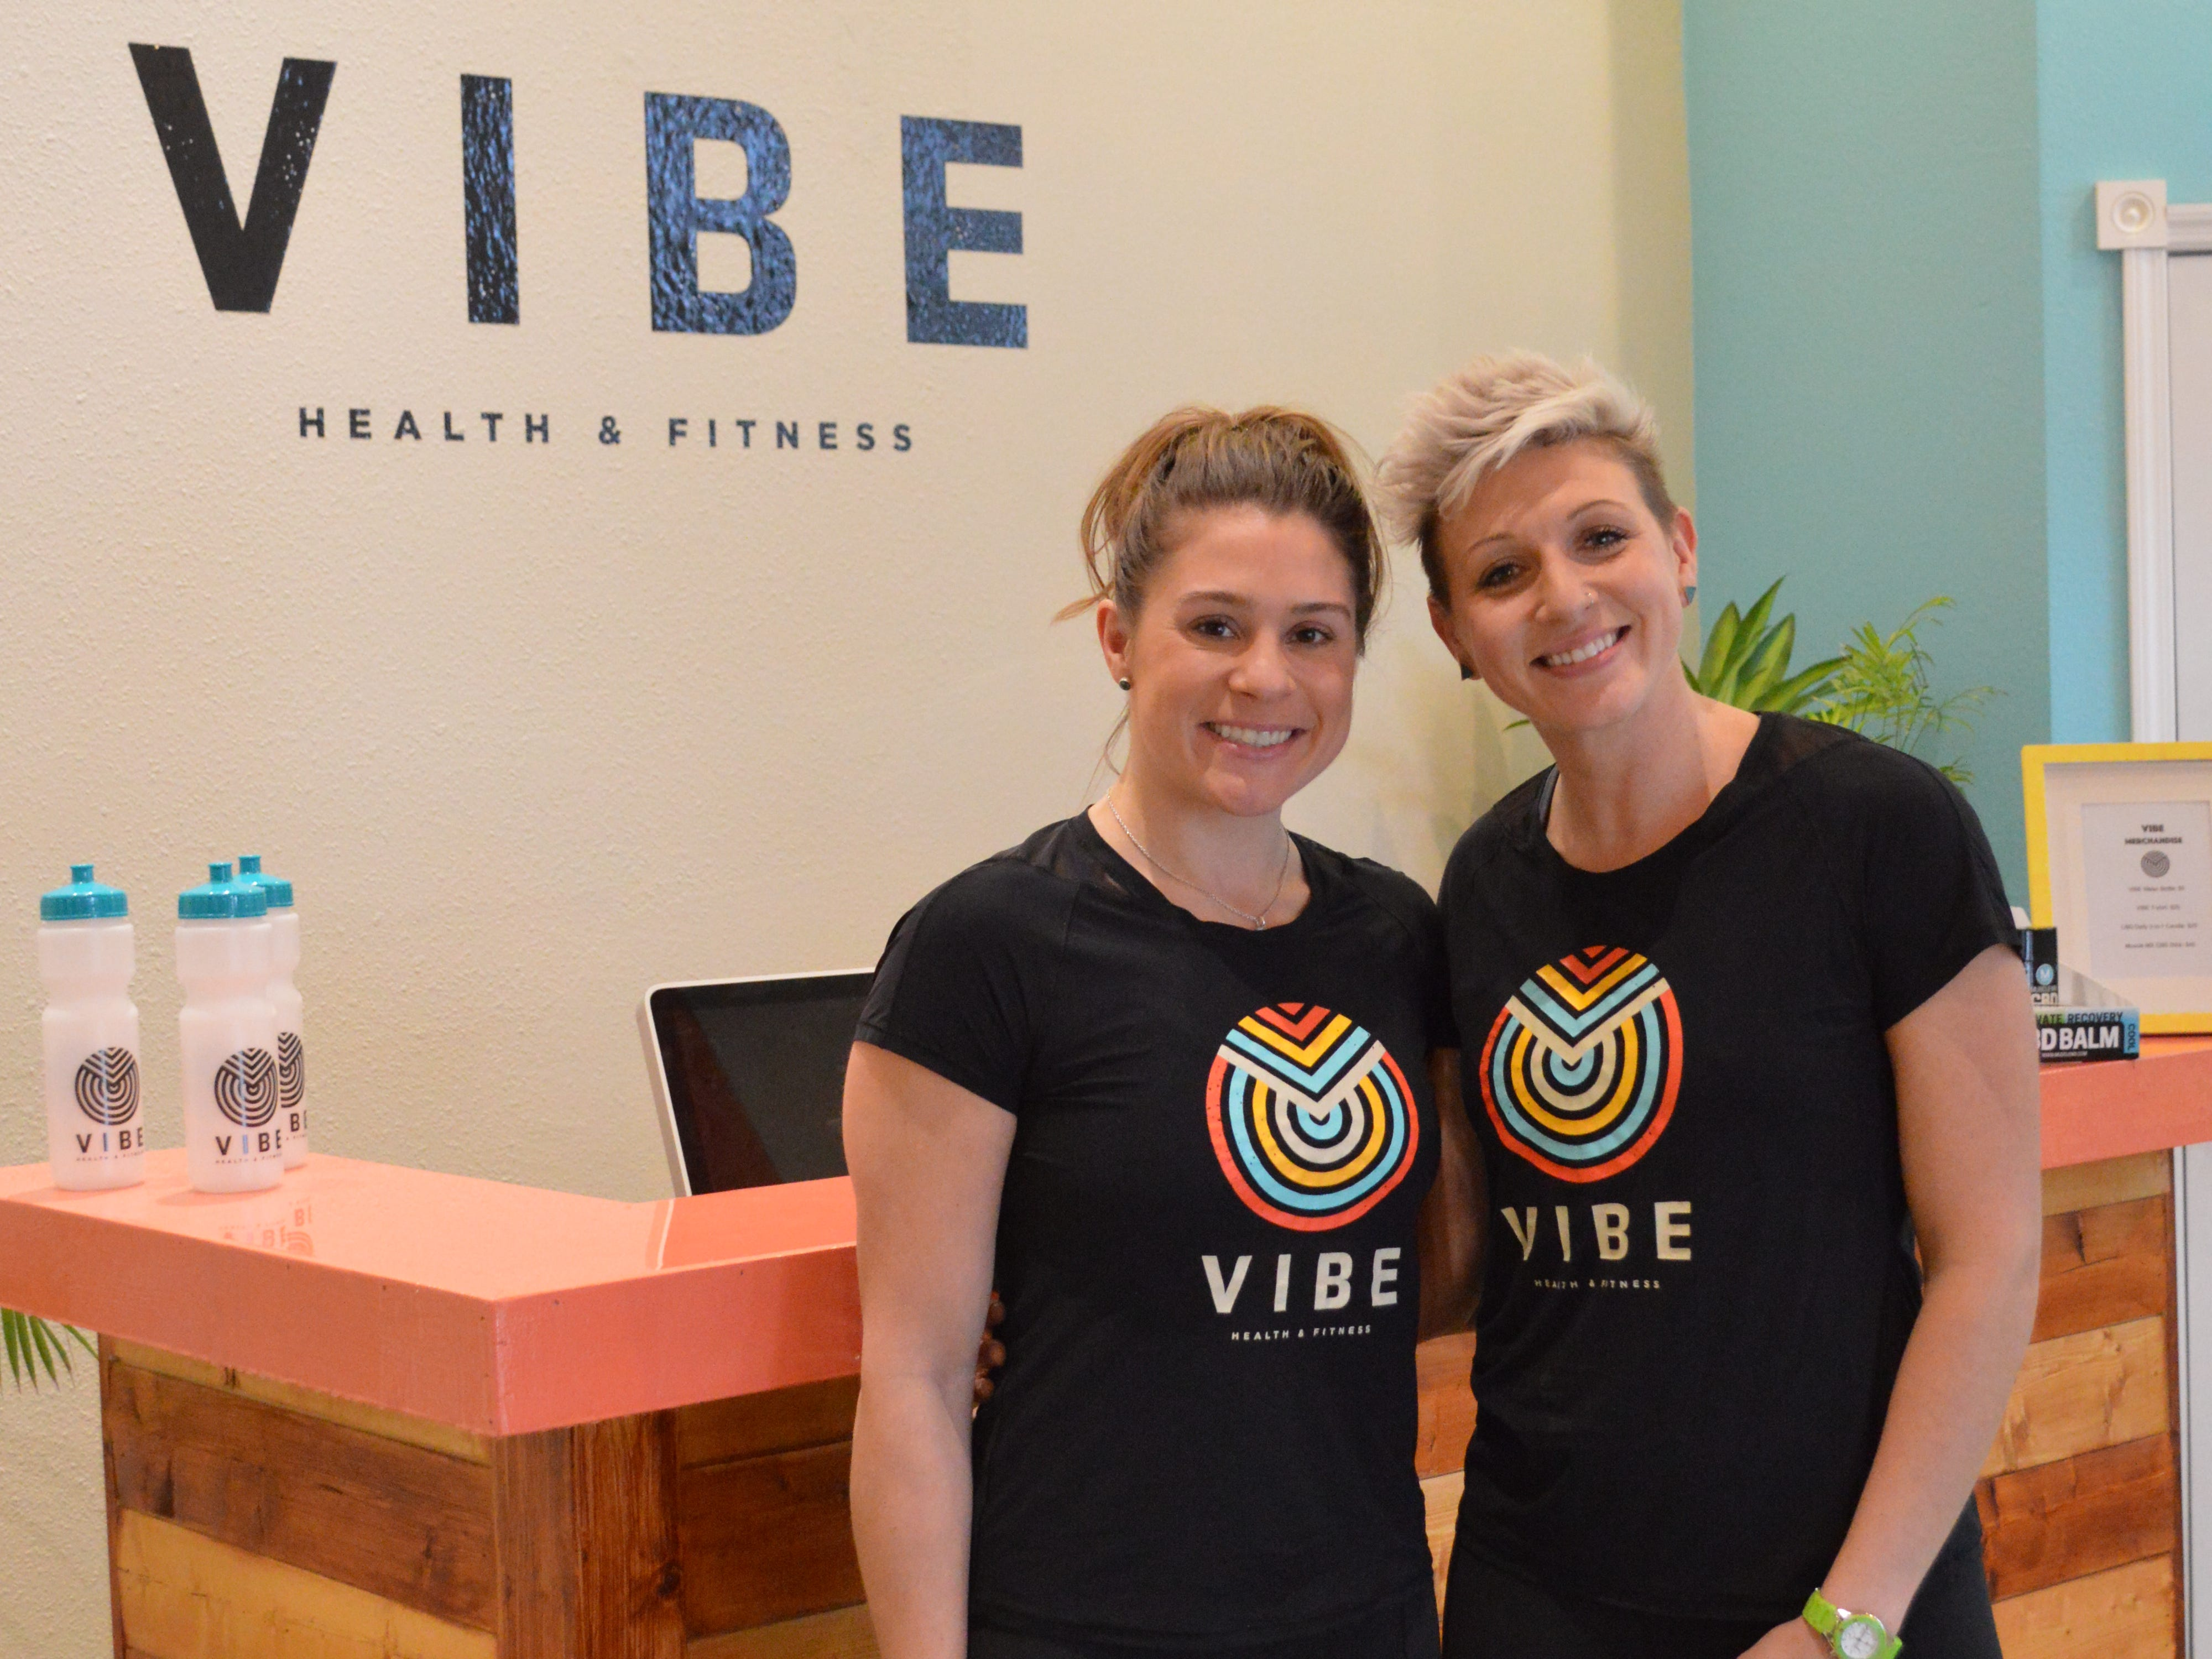 Samantha Link of Wauwatosa and Carly Chertos of Bay View opened VIBE Health and Fitness in Waukesha in January.